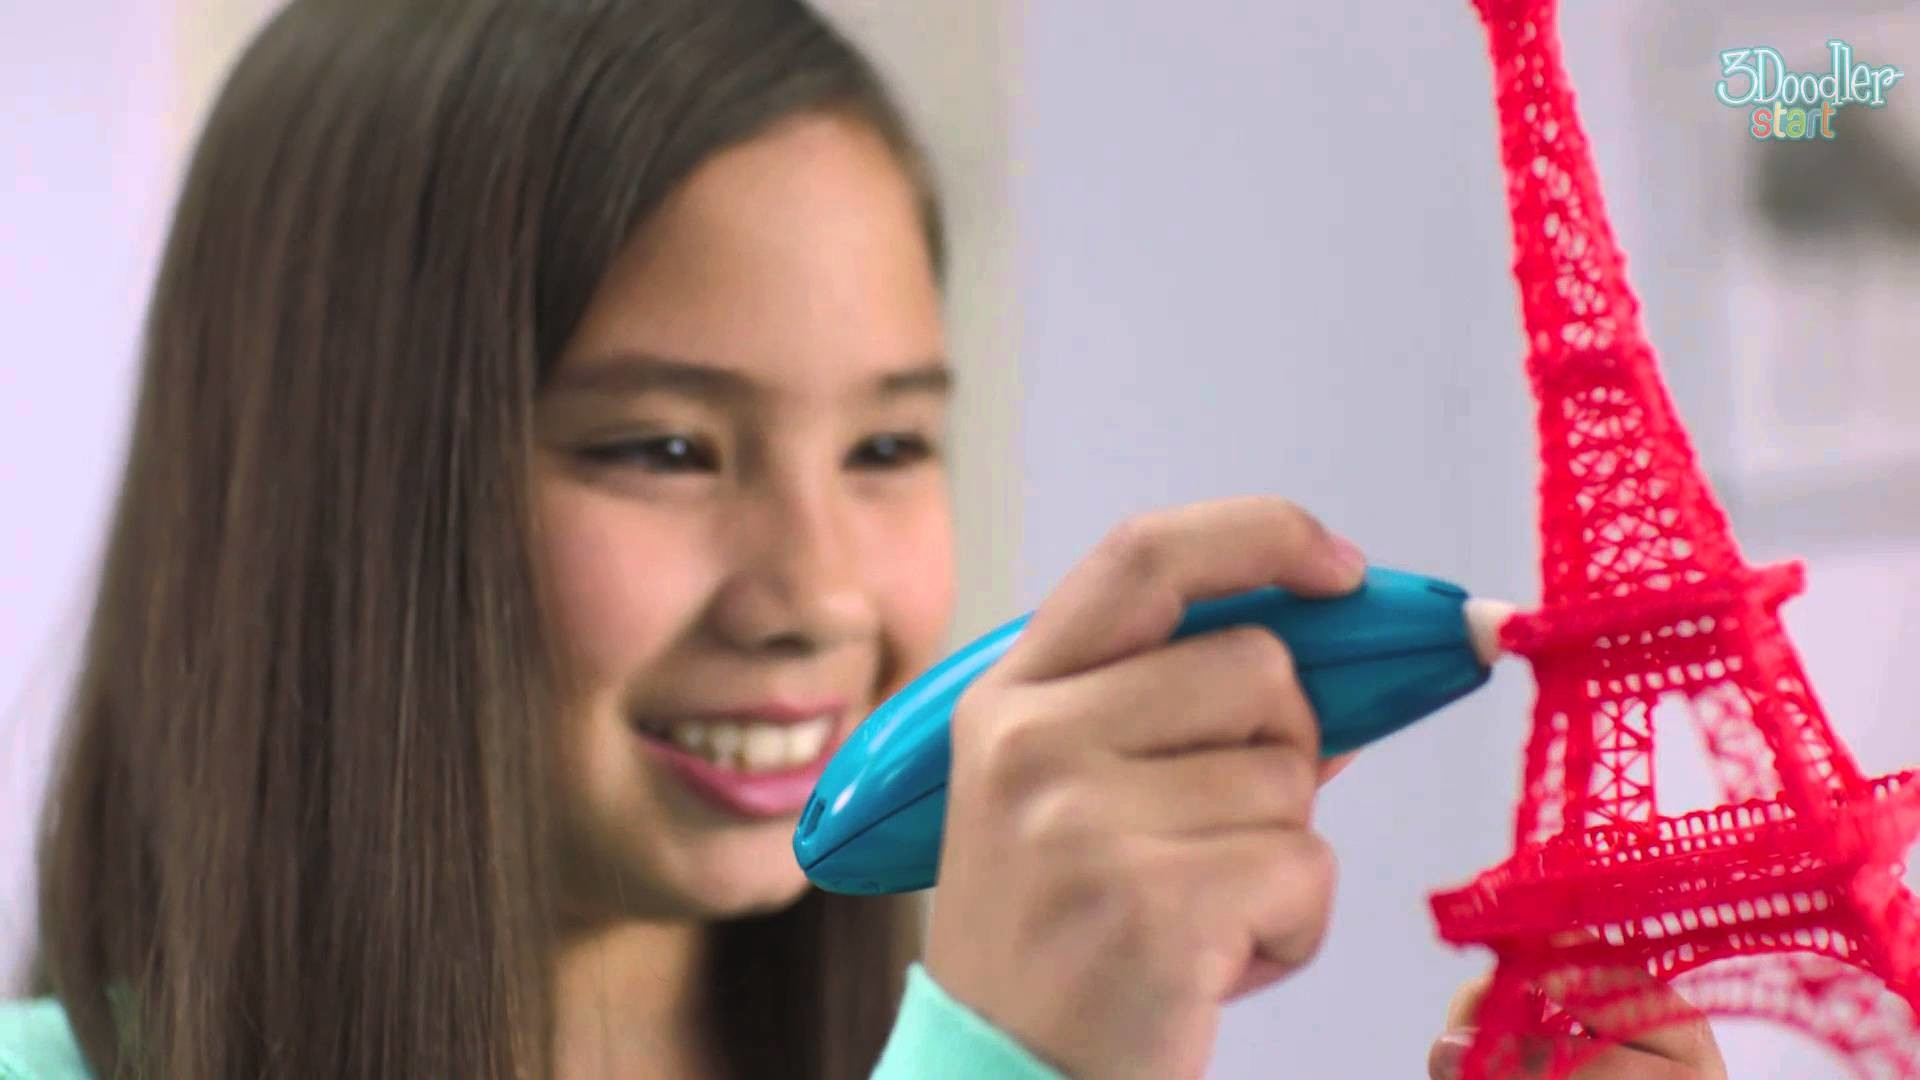 New 3Doodler Start. 3D Printing Pen For Young Creators